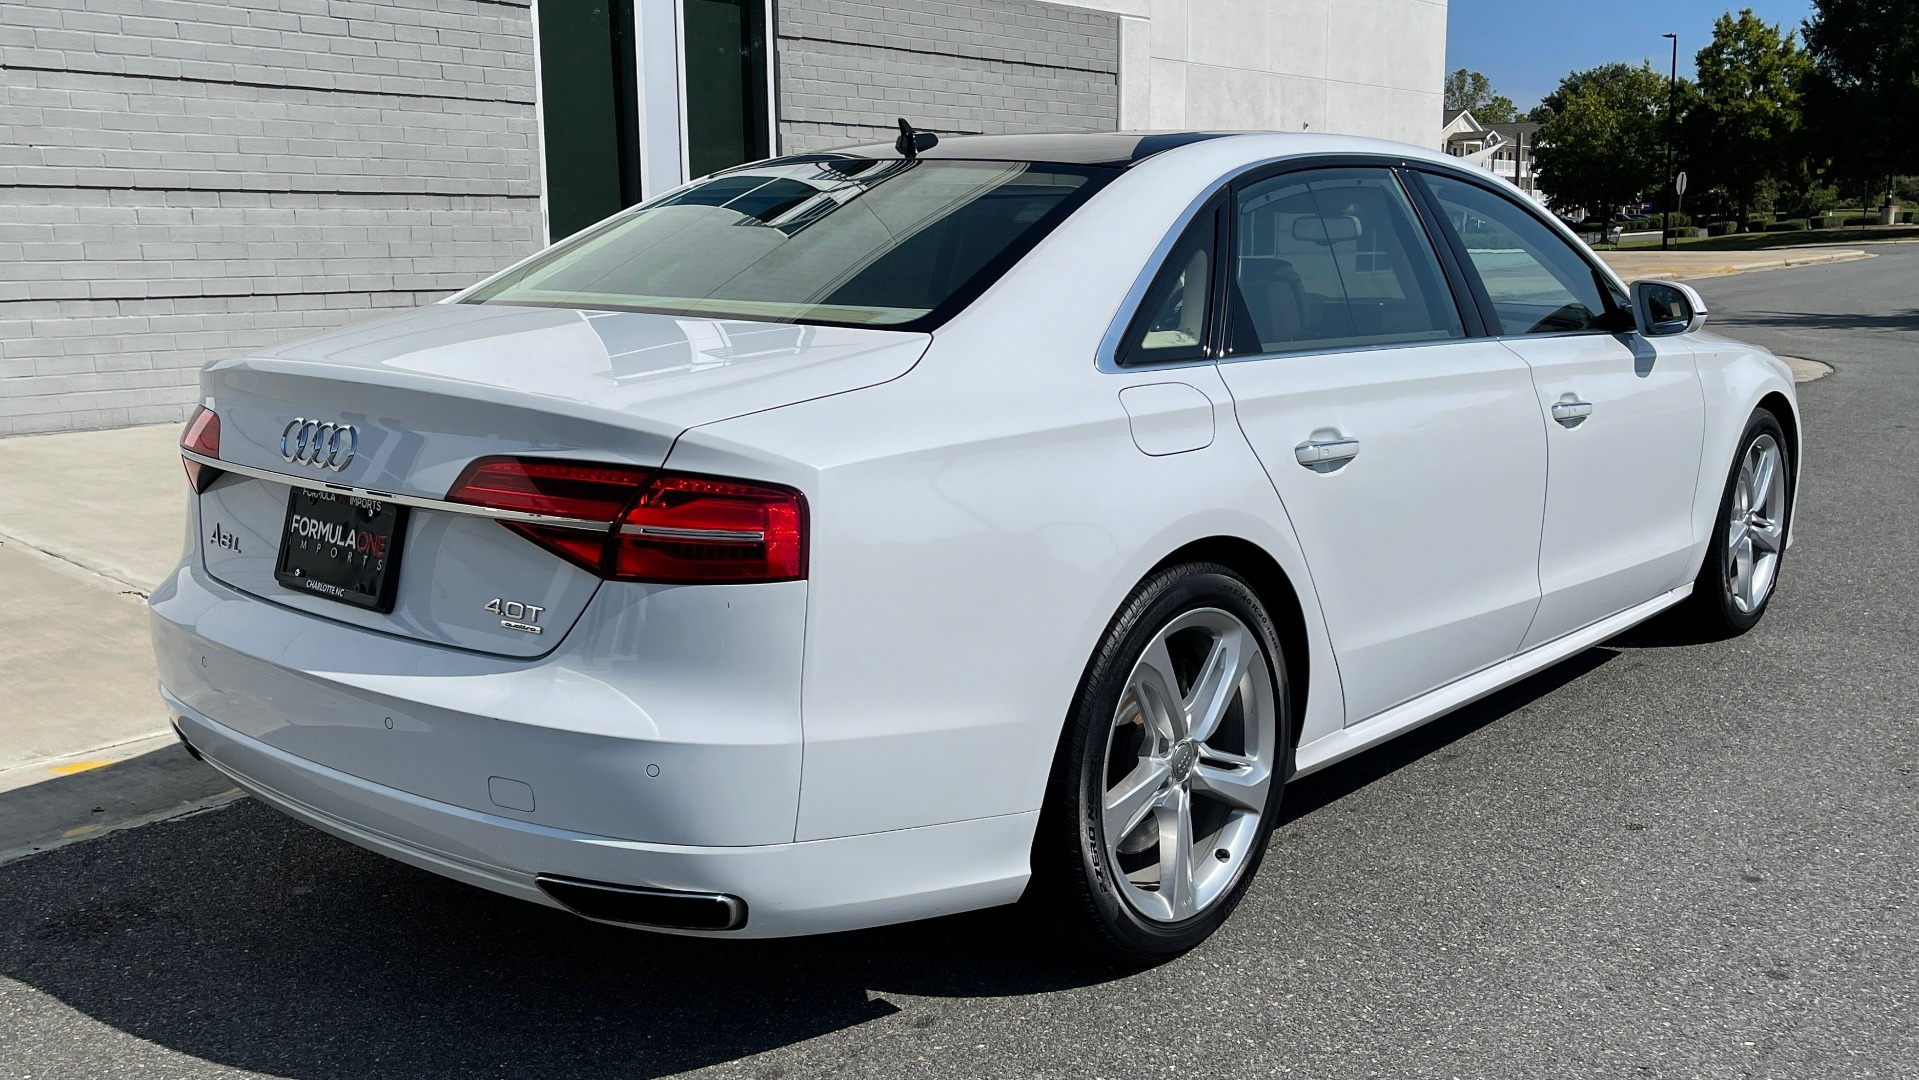 Used 2018 Audi A8 L SPORT 4.0T / EXECUTIVE PKG / NAV / BOSE / SUNROOF / REARVIEW for sale Sold at Formula Imports in Charlotte NC 28227 6